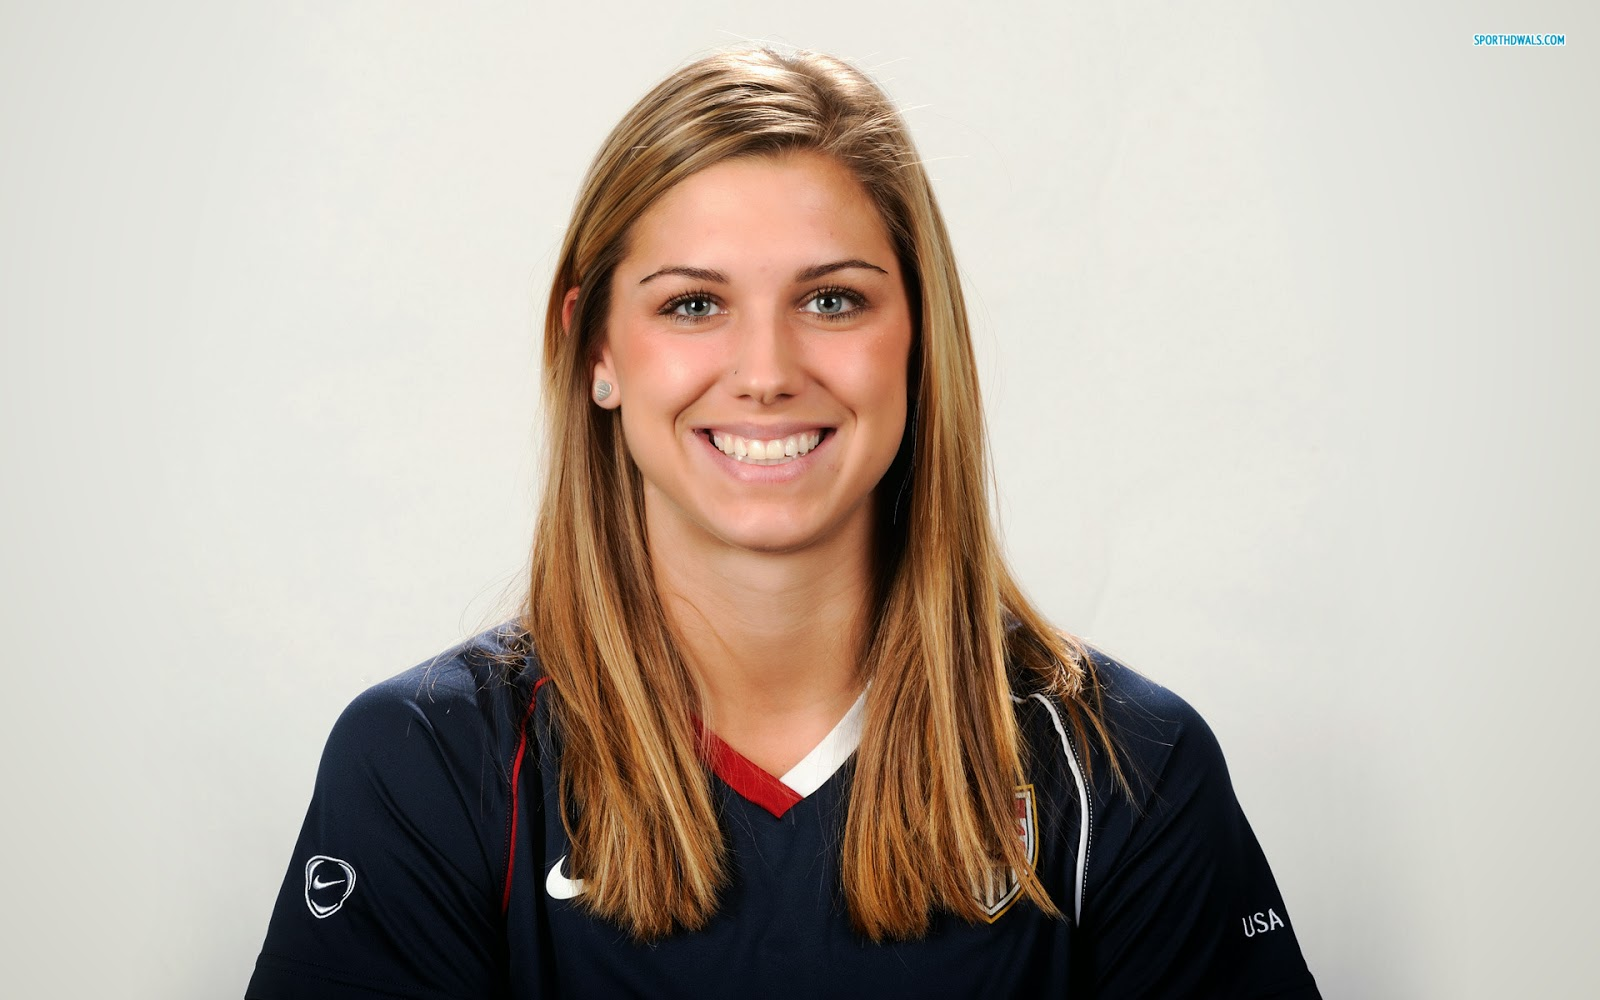 Alex morgan hot hd wallpapers hd wallpapers blog for The morgan